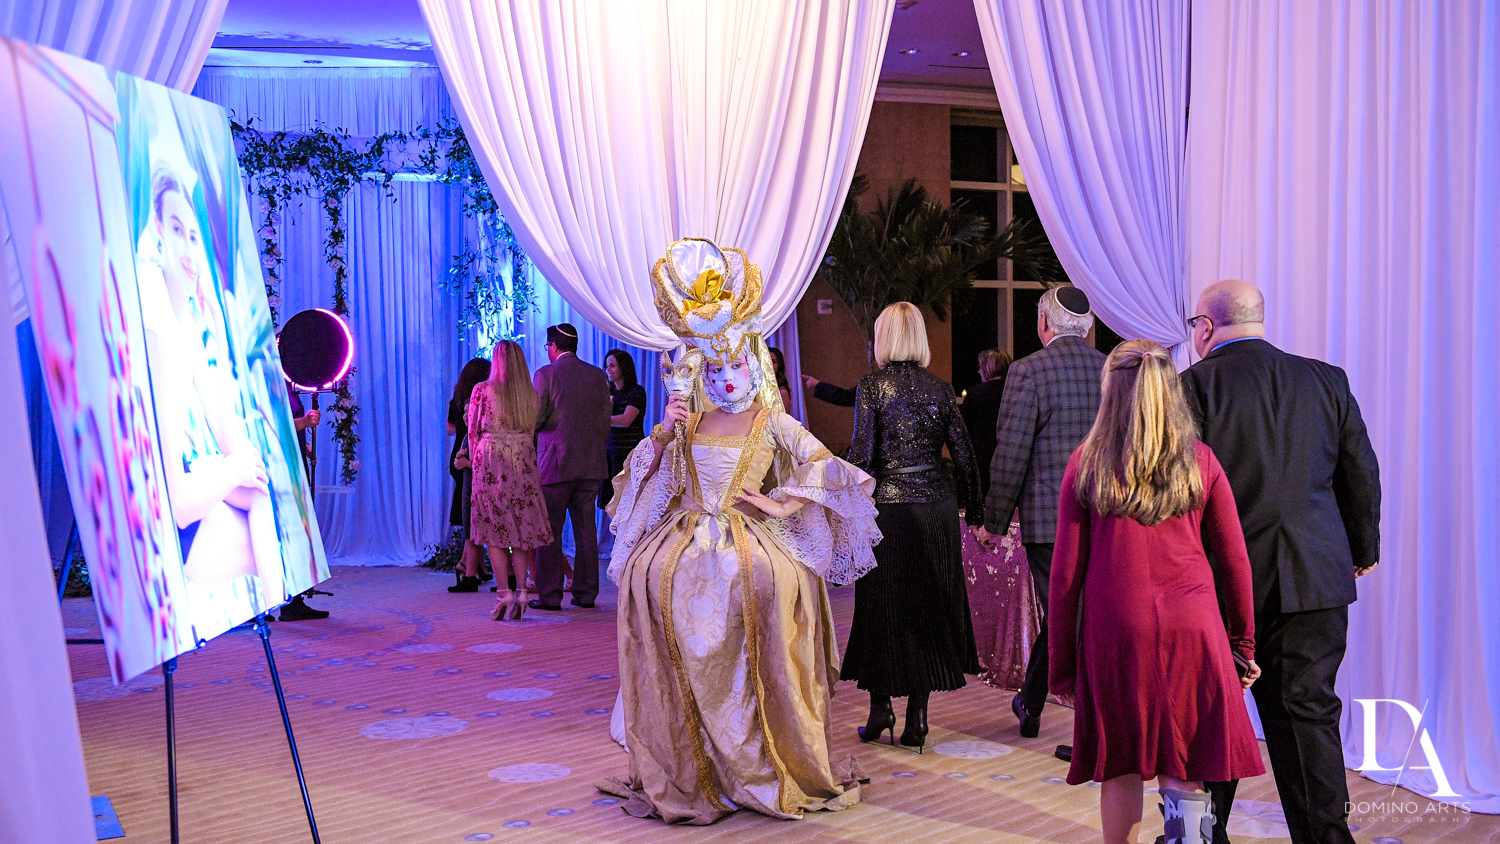 models at Masquerade Ball Bat Mitzvah at Ritz Carlton Fort Lauderdale by Domino Arts Photography